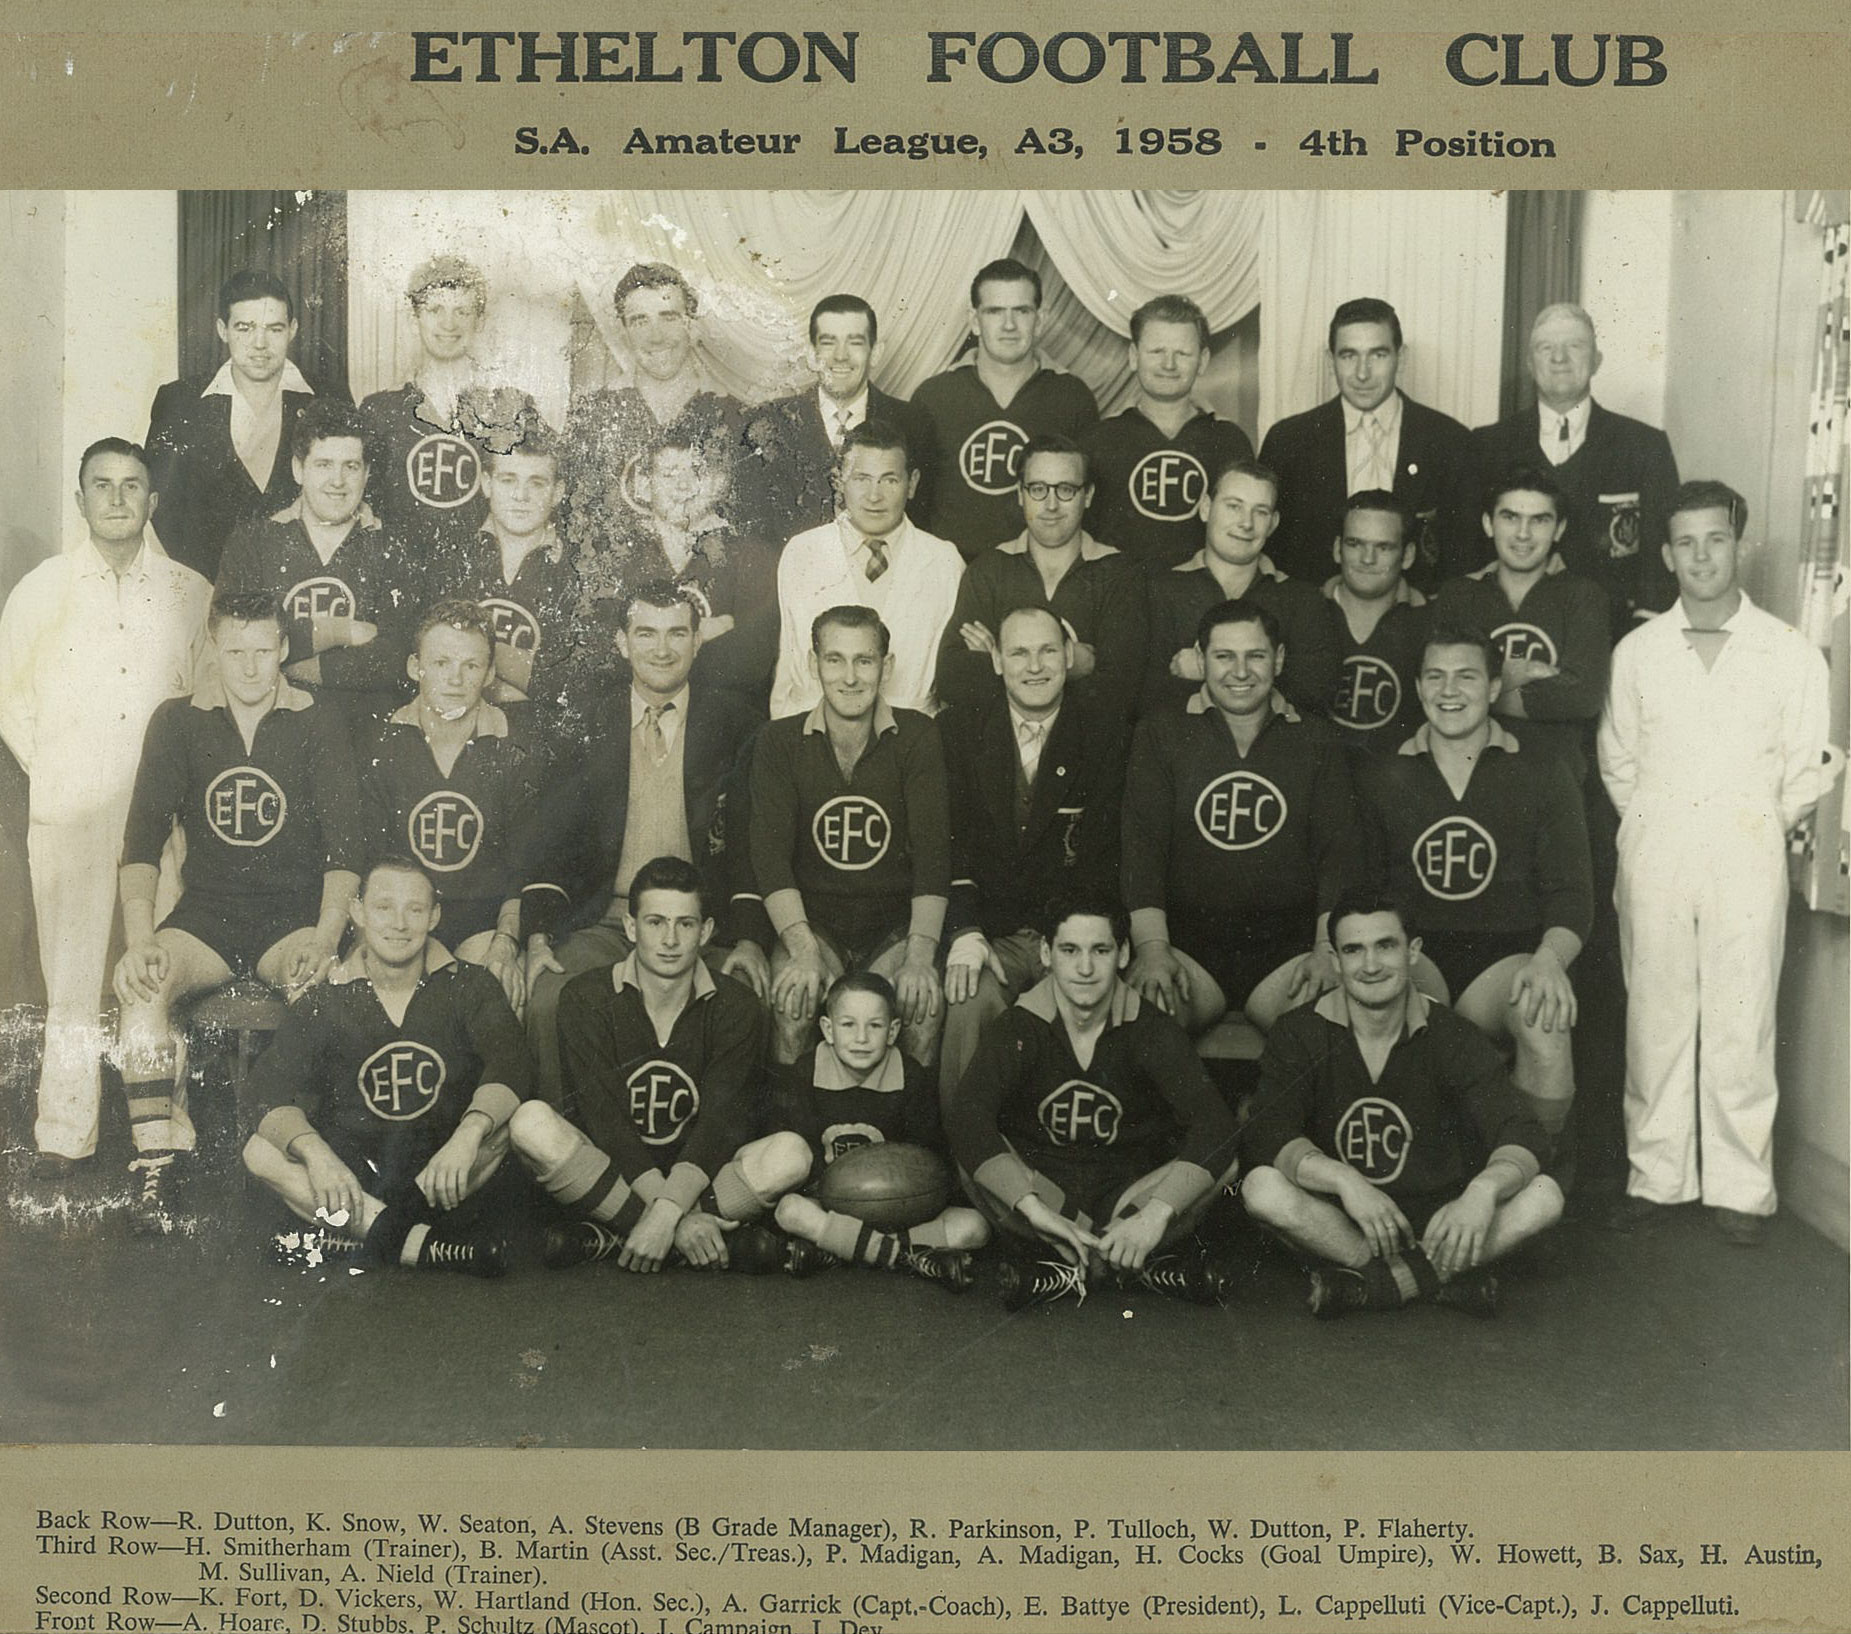 Ethelton Football Club